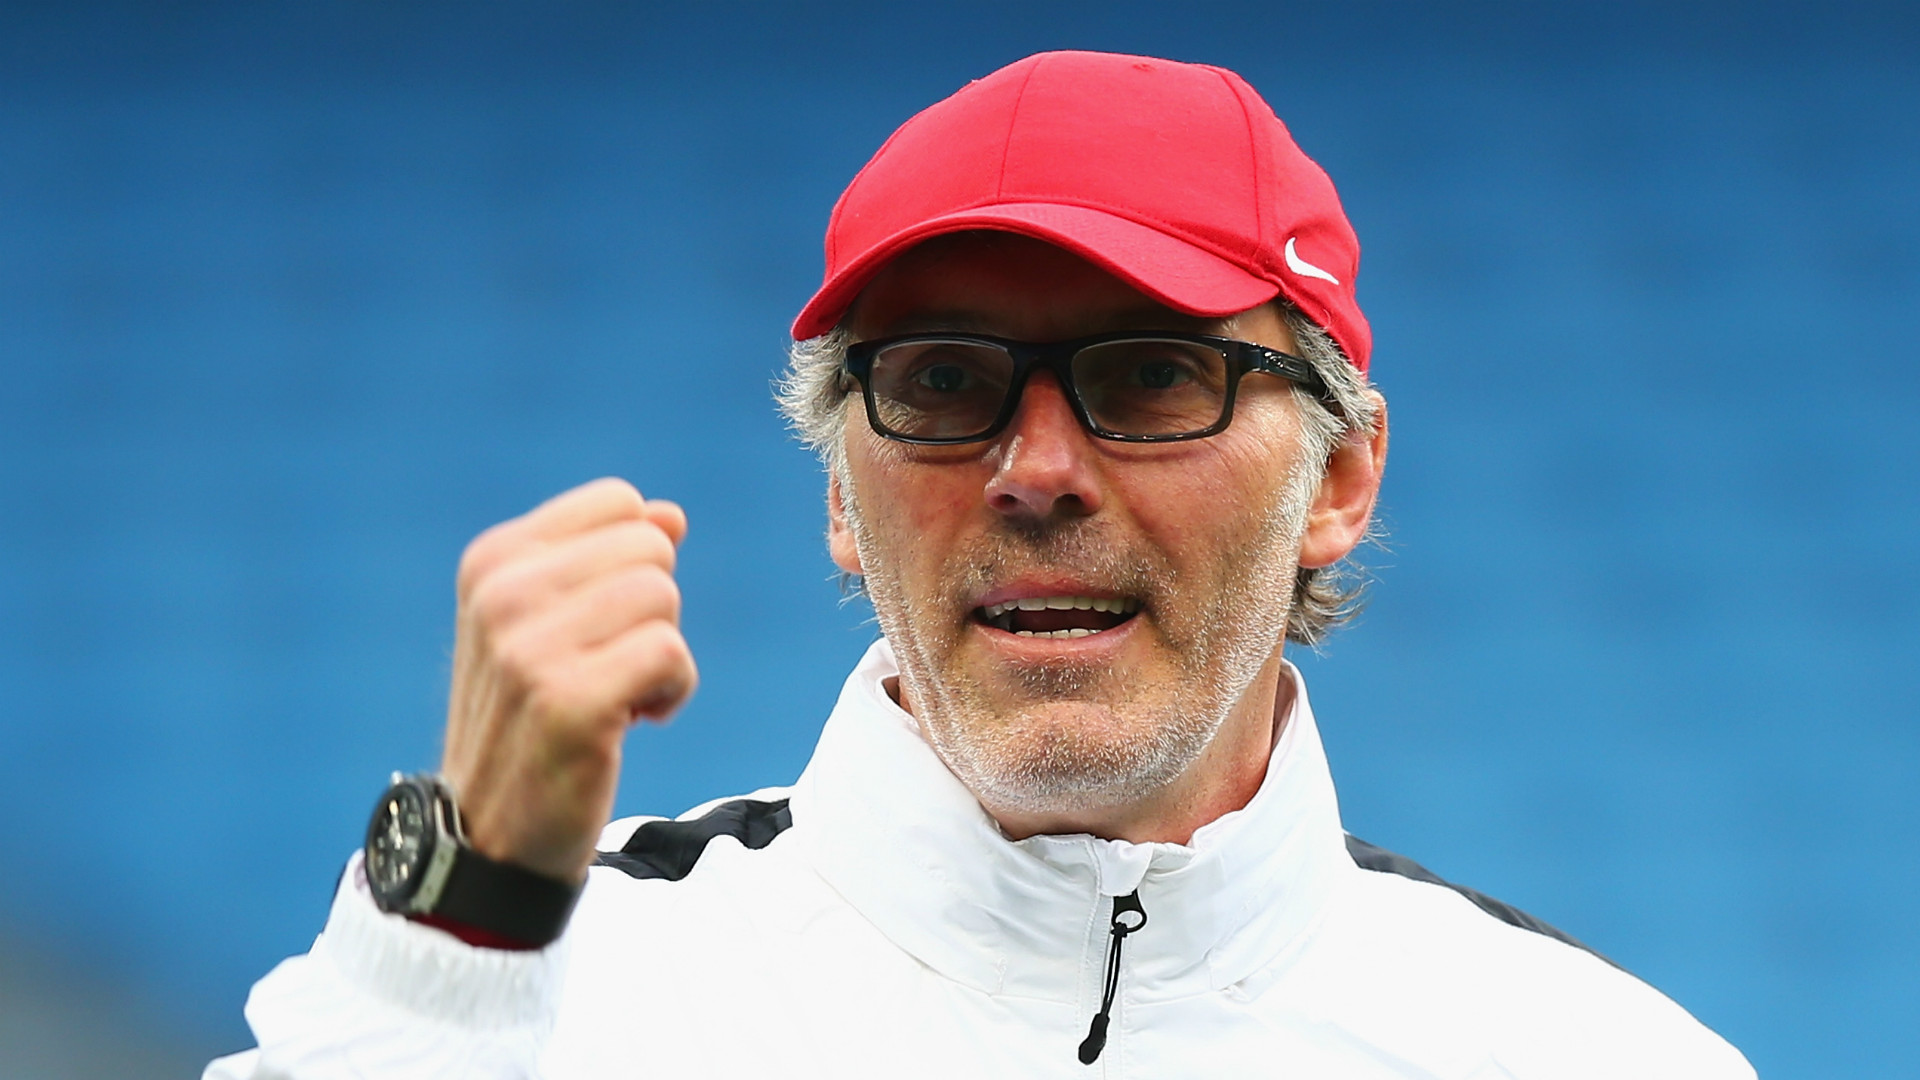 Laurent-blanc-psg-paris-saint-germain_8w4mmpz3u0vb1rlrxjdfdasjo